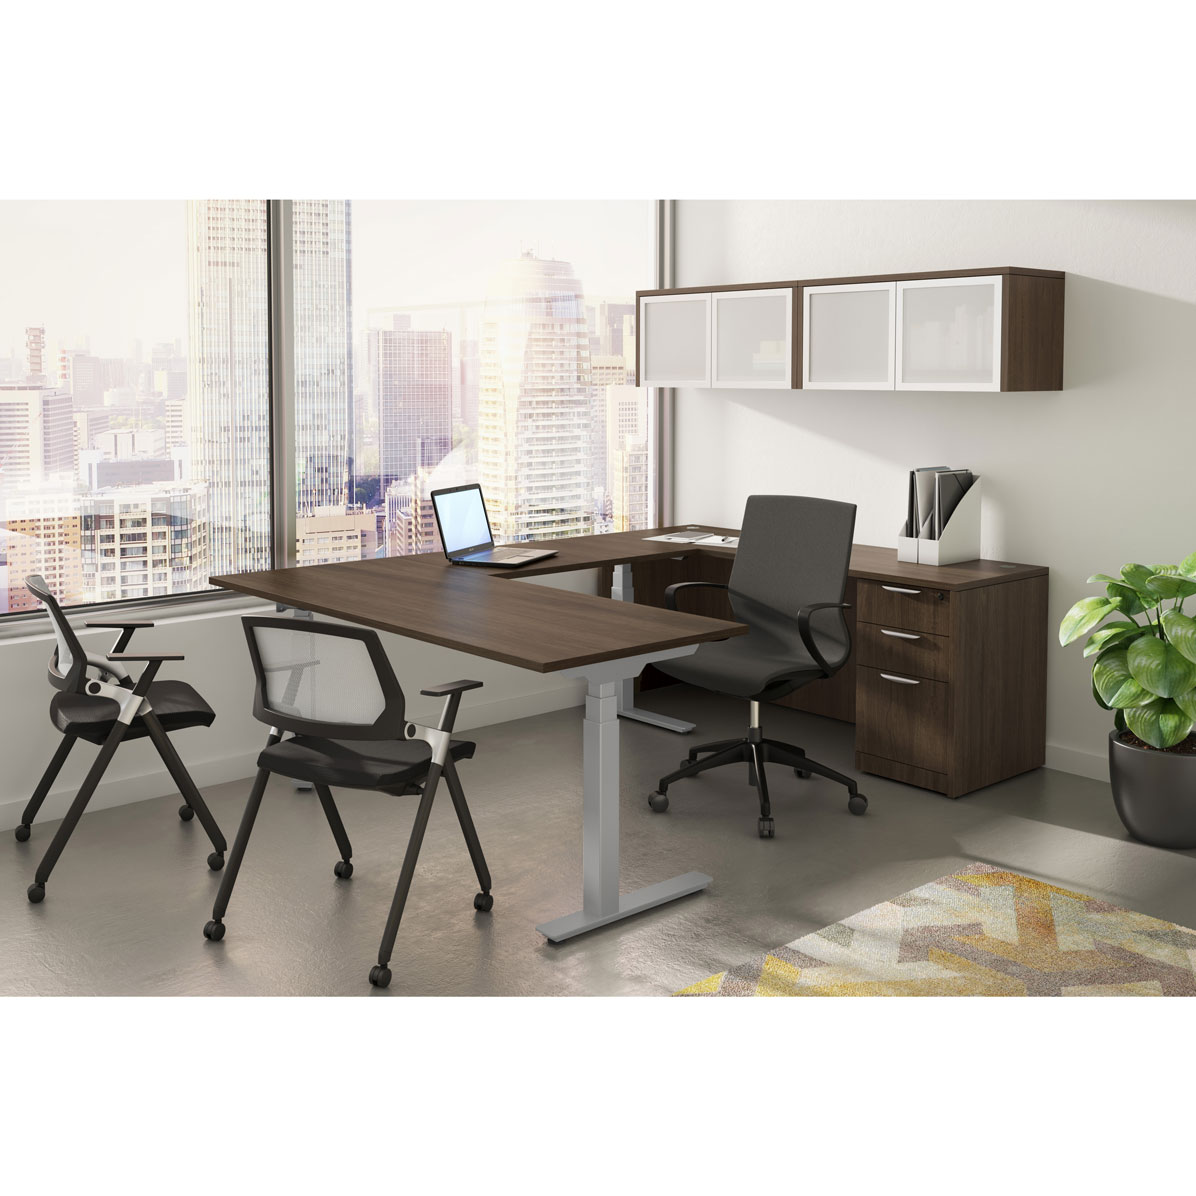 OfficeSource StandUp Standing Desk Collection Typical OS165